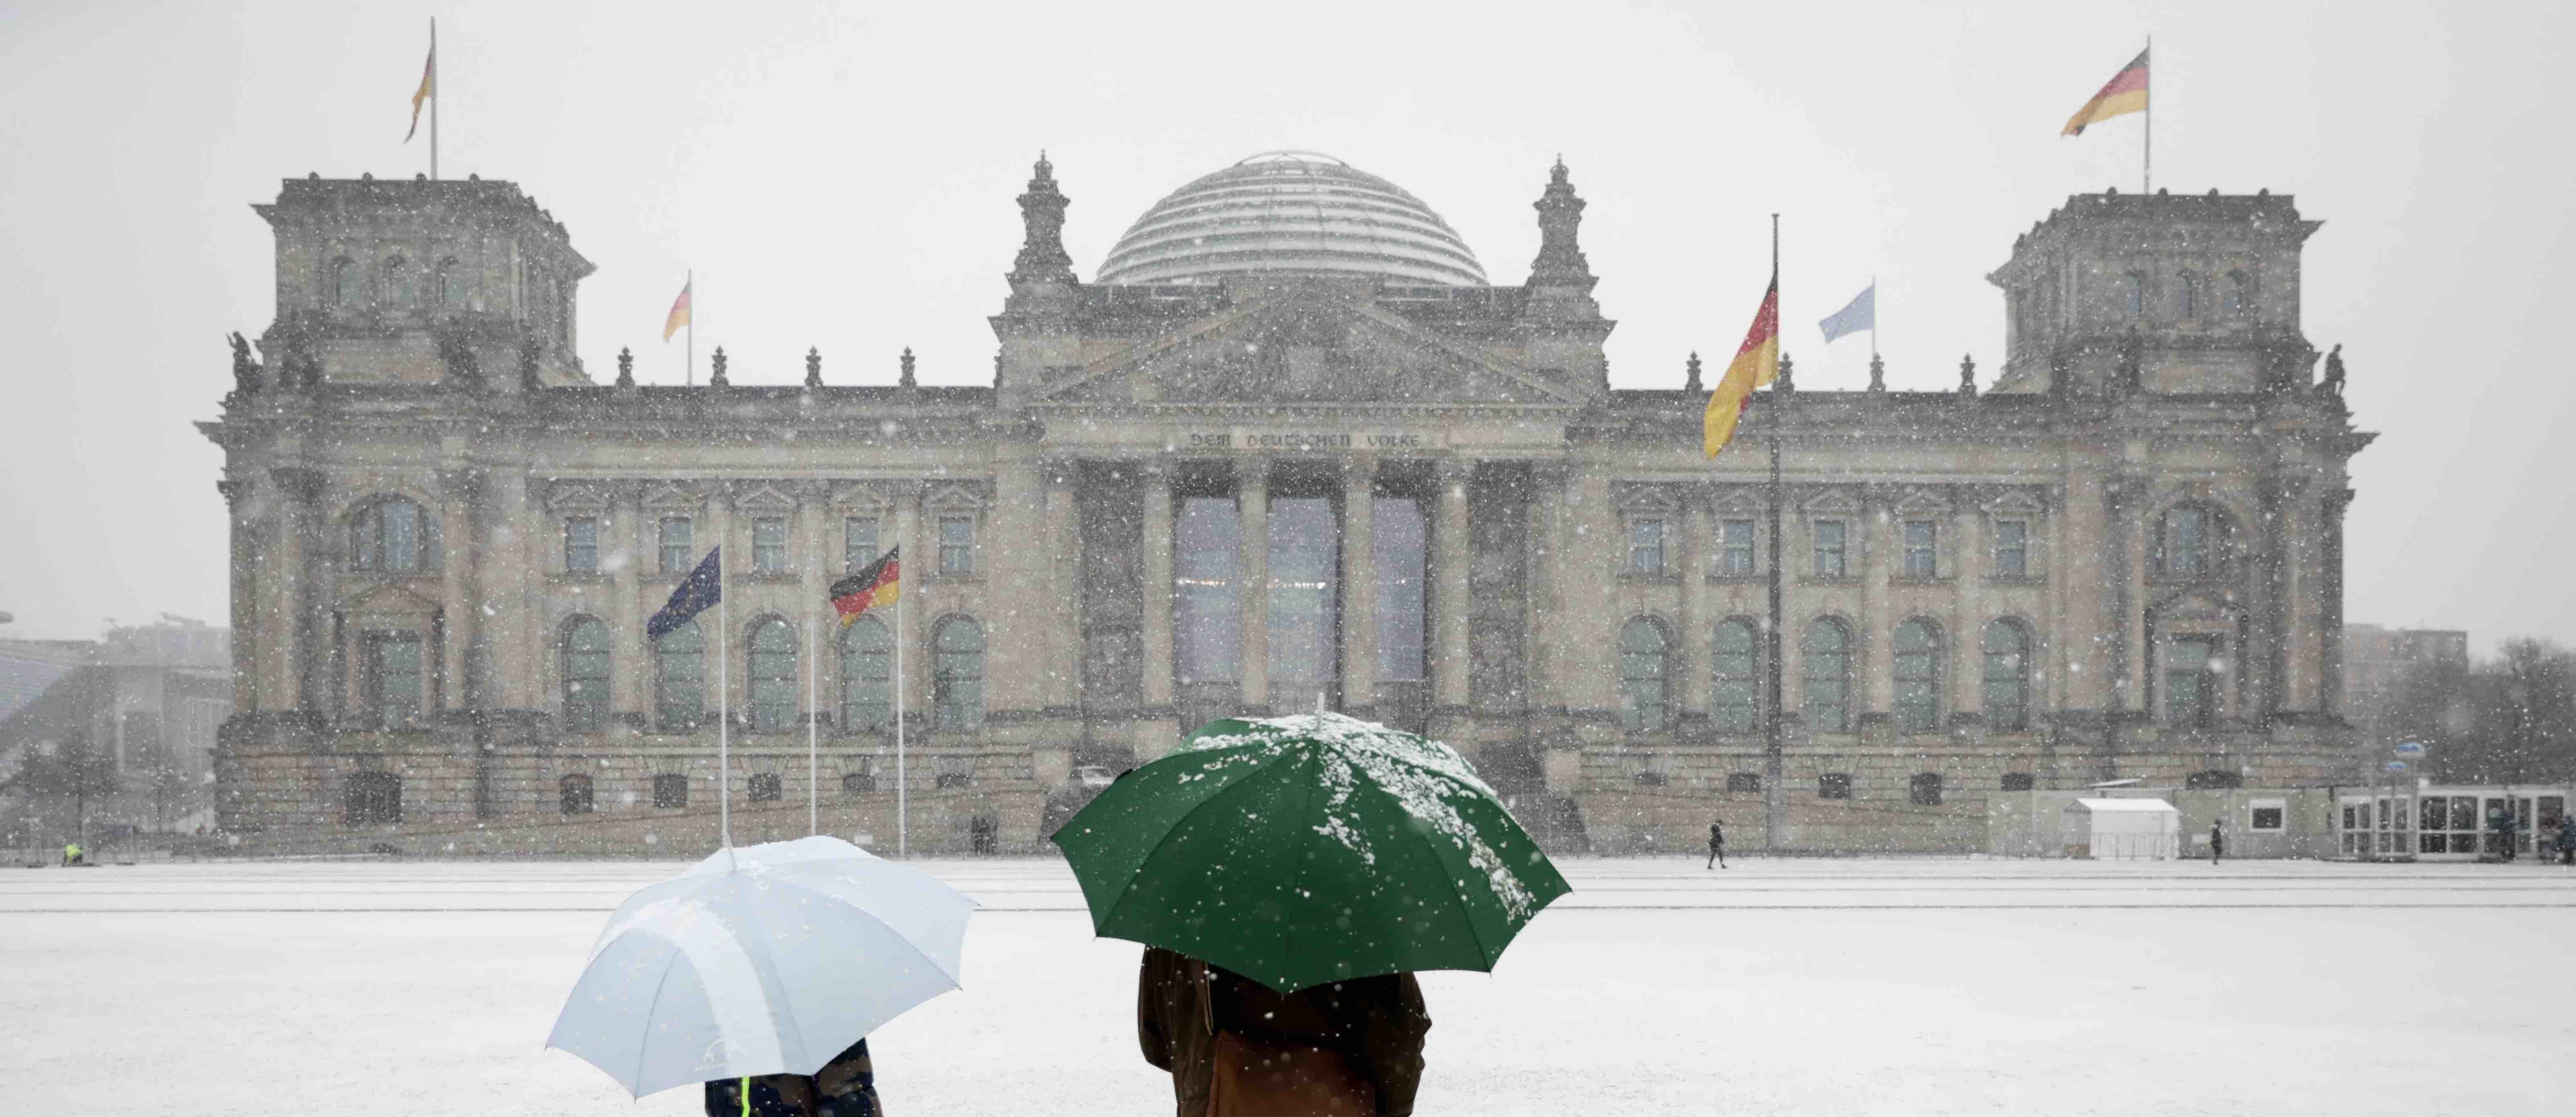 The Reichstag building housing the Bundestag in Berlin. (Photo: Kay Nietfeld/Getty)